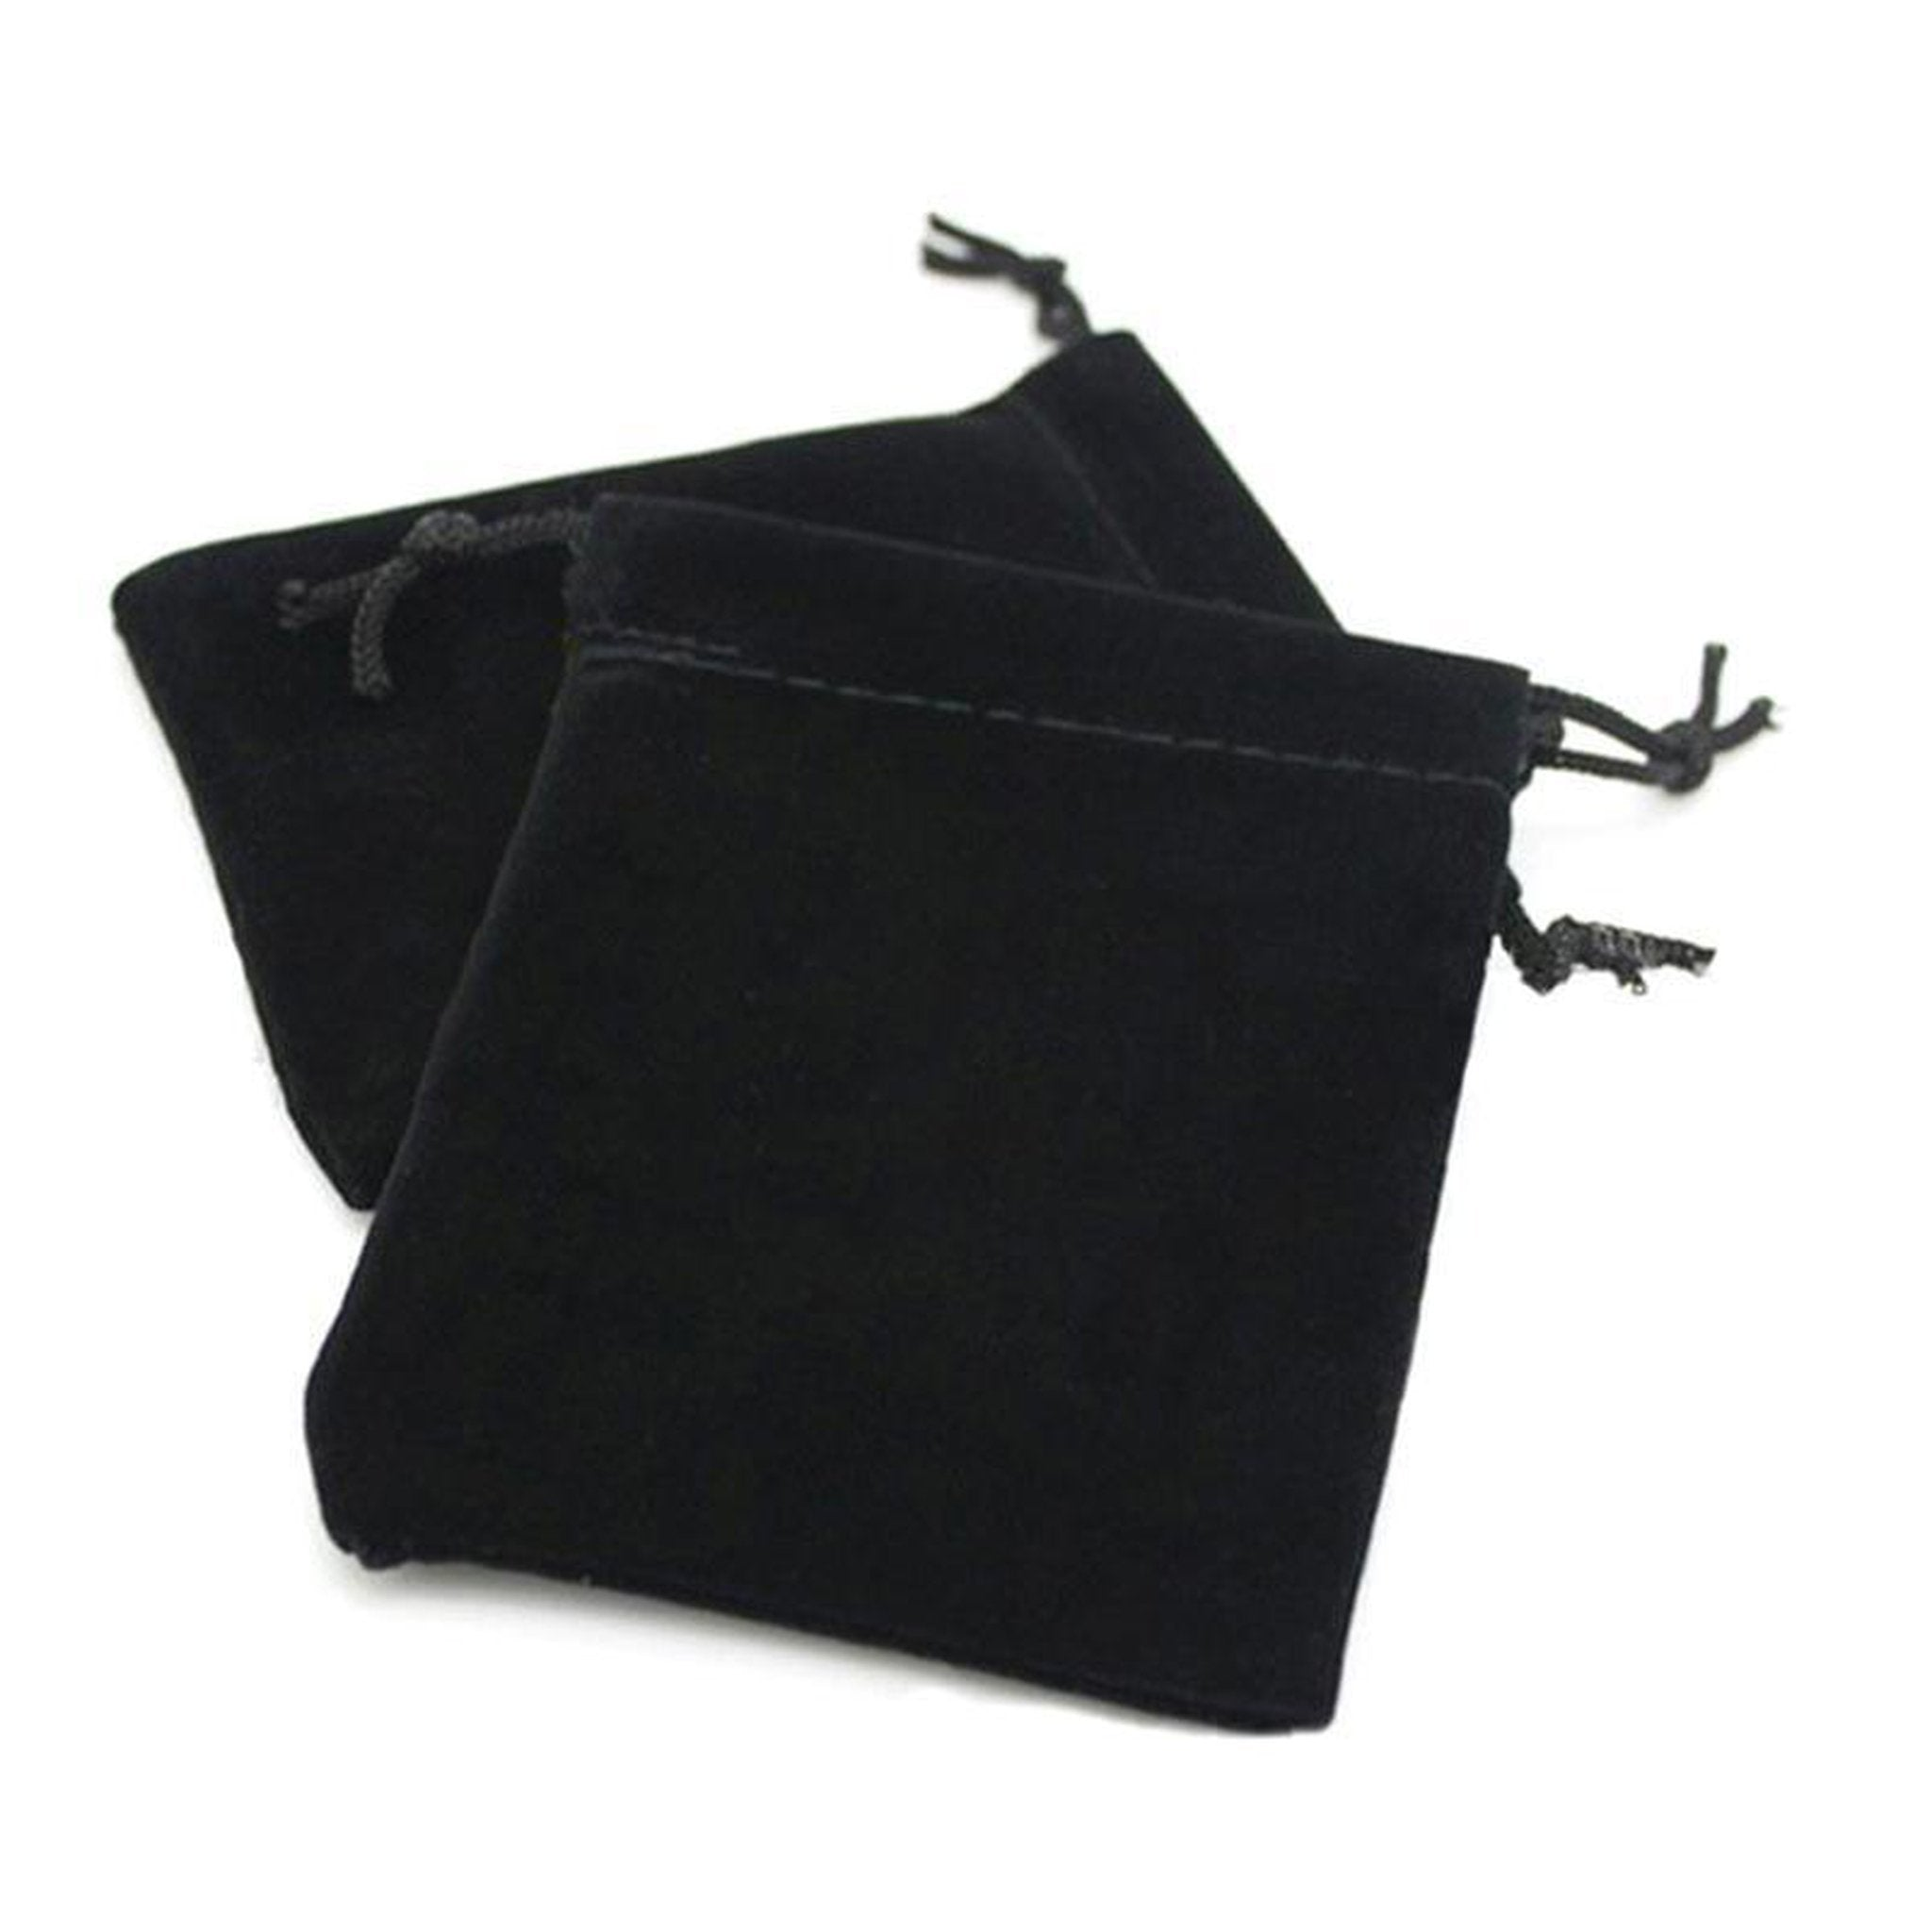 Velvet Drawstring Bag-Good Girl xox-Black-buy-bdsm-bondage-gear-tools-toys-online-good-girl-xox